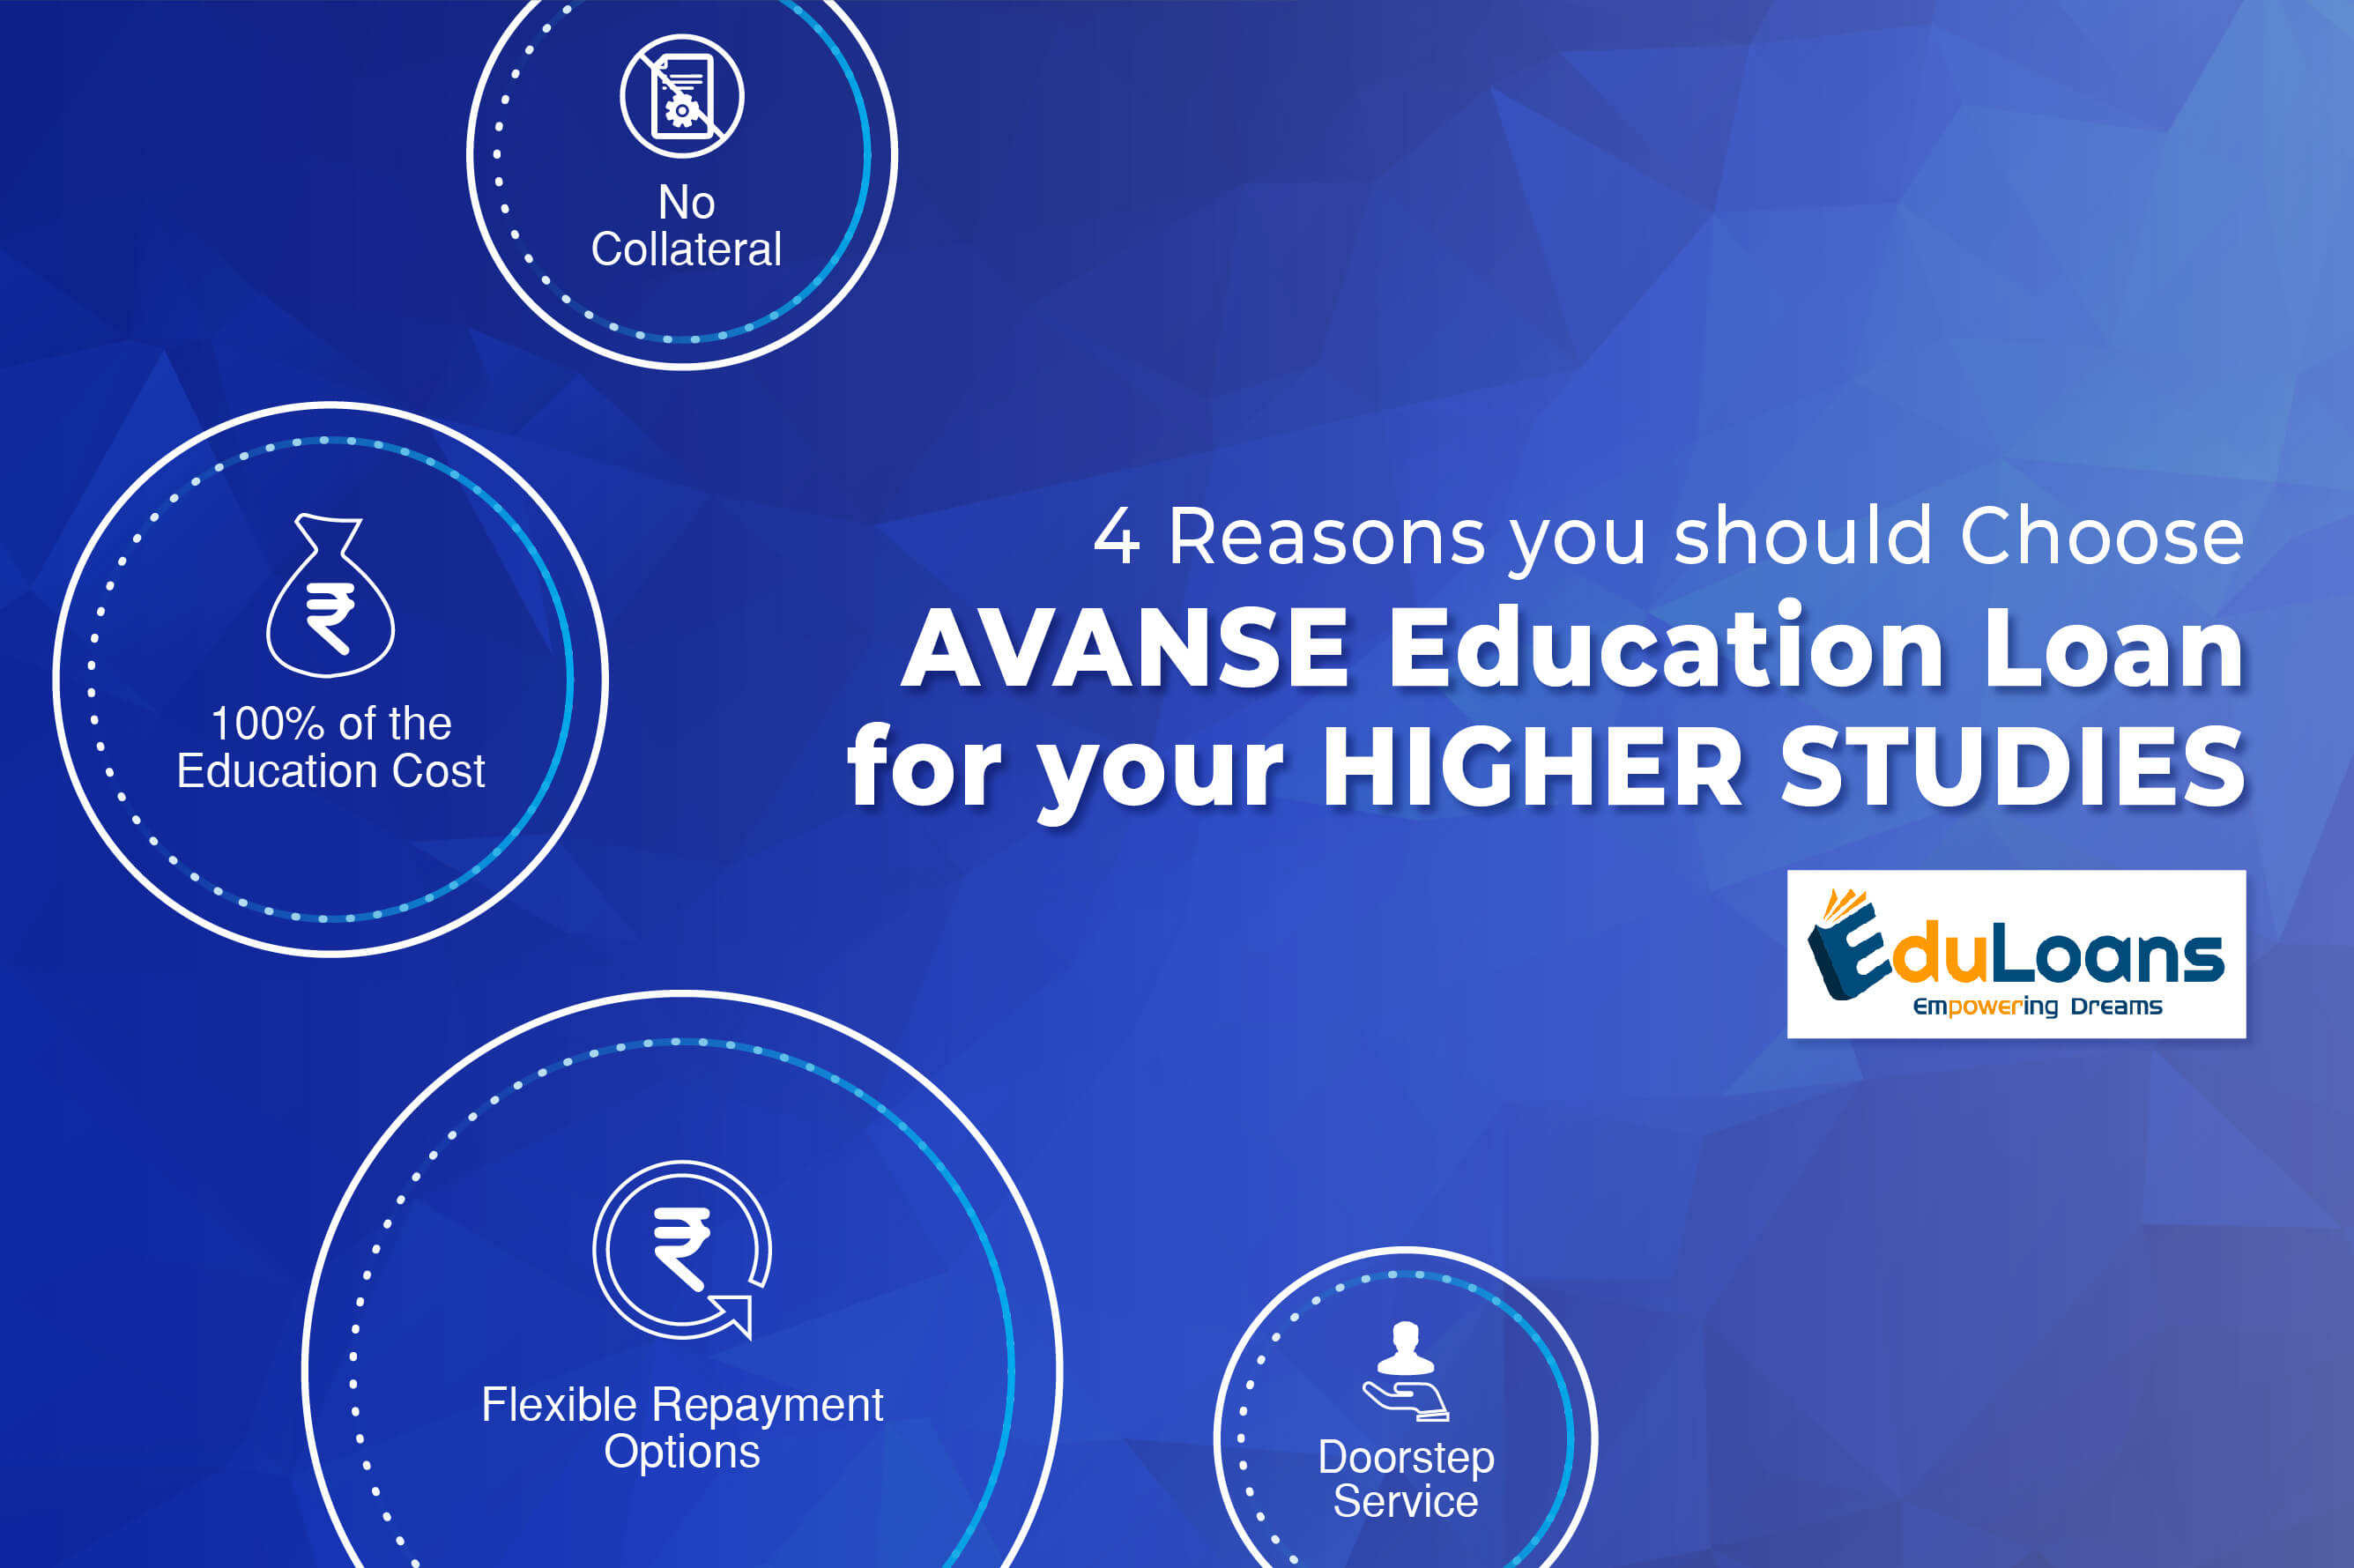 4 Reasons you should Choose Avanse Education Loan for your higher studies